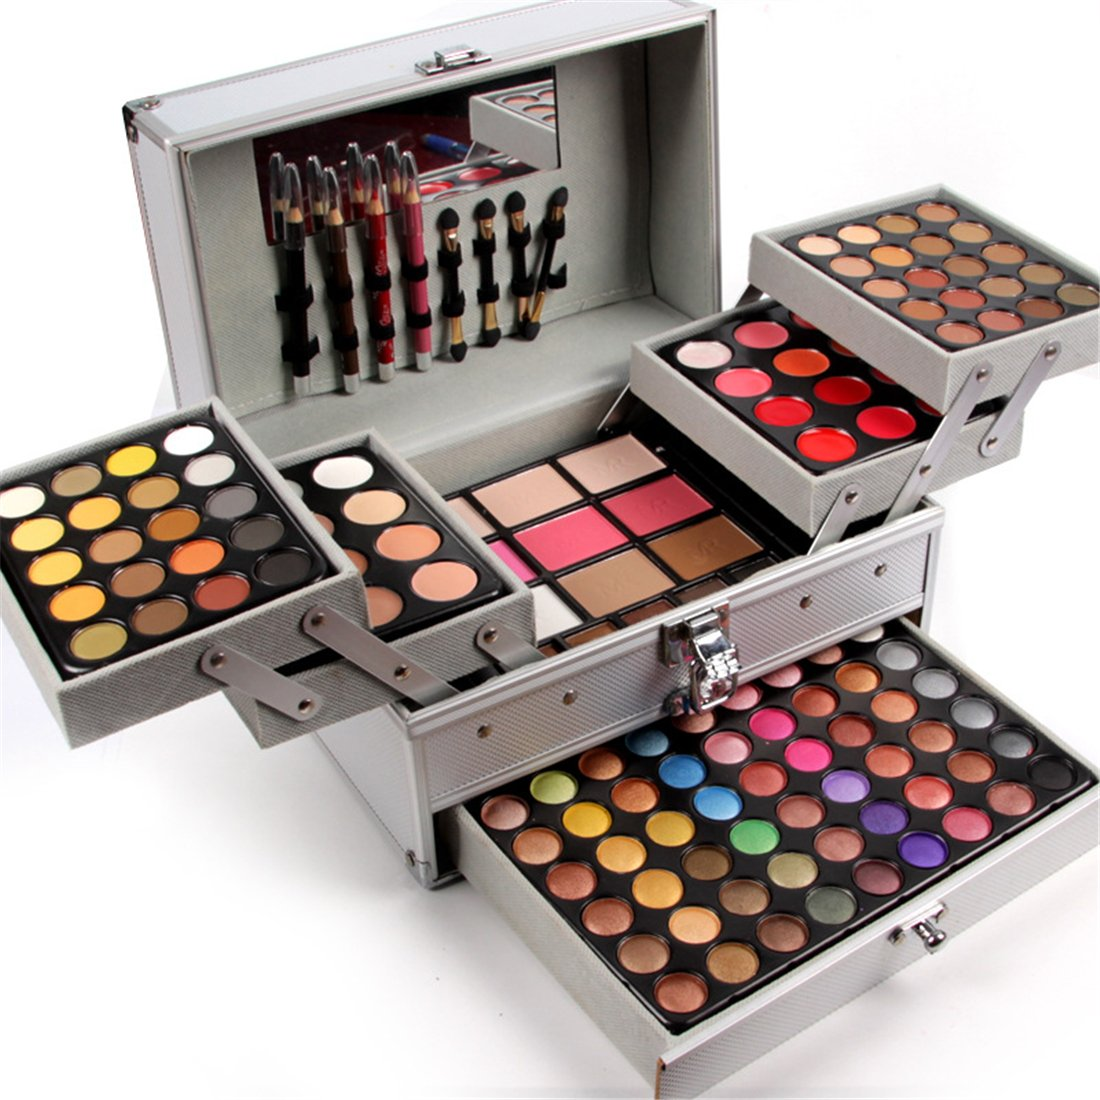 Pure Vie 132 Colors All in one Makeup Gift Set including 94 Highly Pigmented Shimmer and Matte Eyeshadow palette, 12 Concealer, 12 Lip Gloss, 3 Face Powder, 3 Blush, 3 Contour Shade, 5 Eyebrow powder by Pure Vie